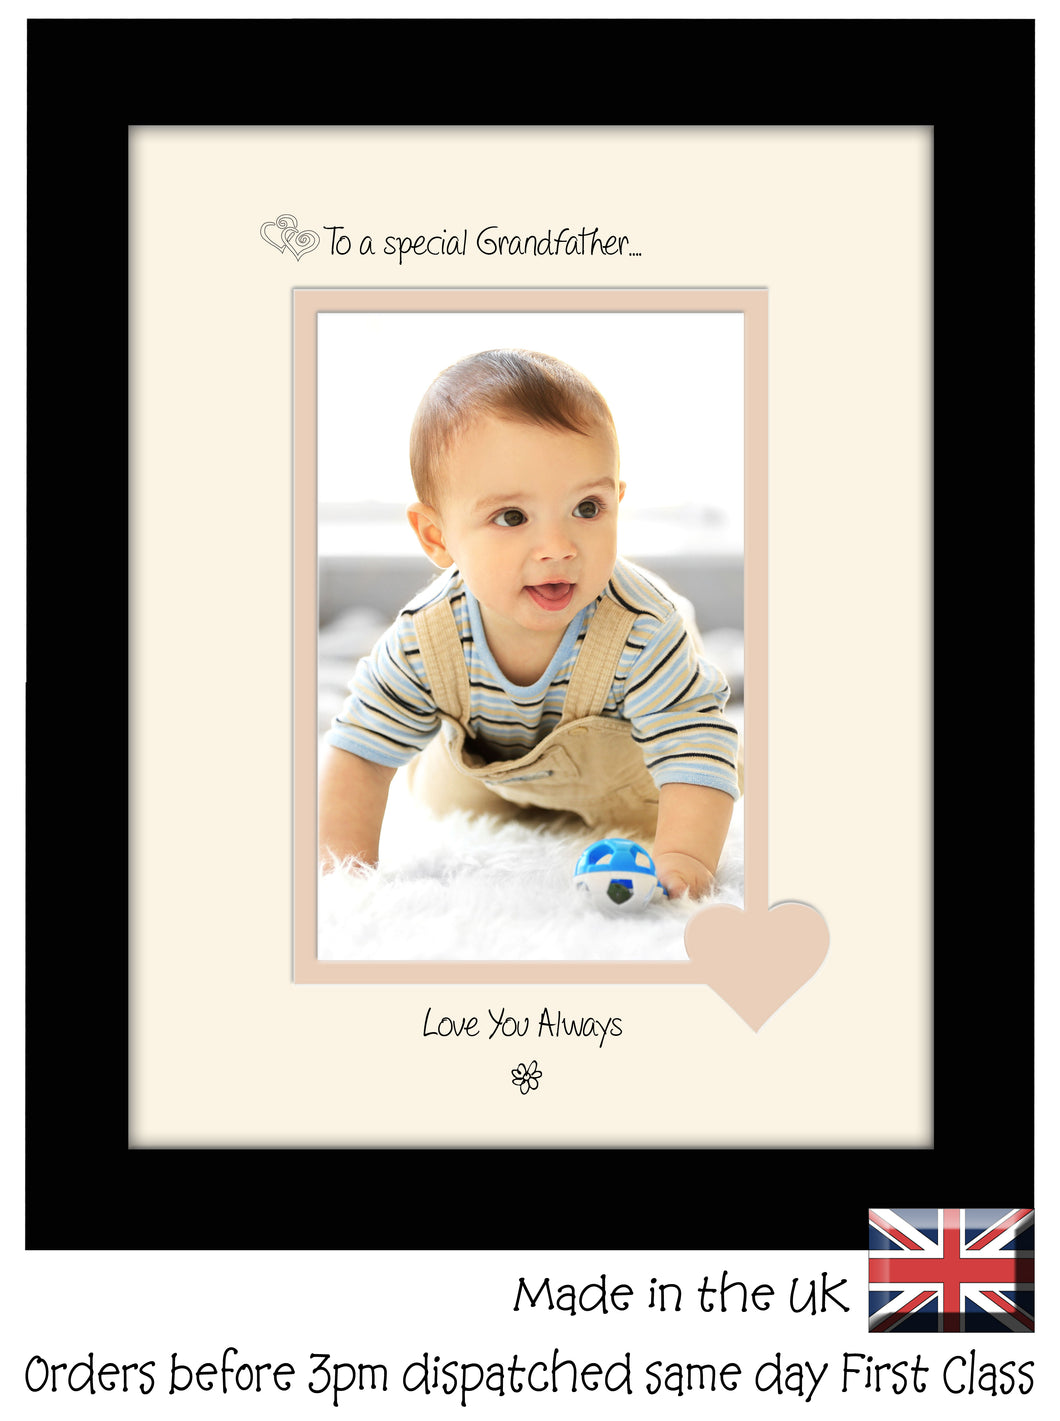 Grandfather Photo Frame - To a Special Grandfather ... Love you Always Portrait photo frame 6